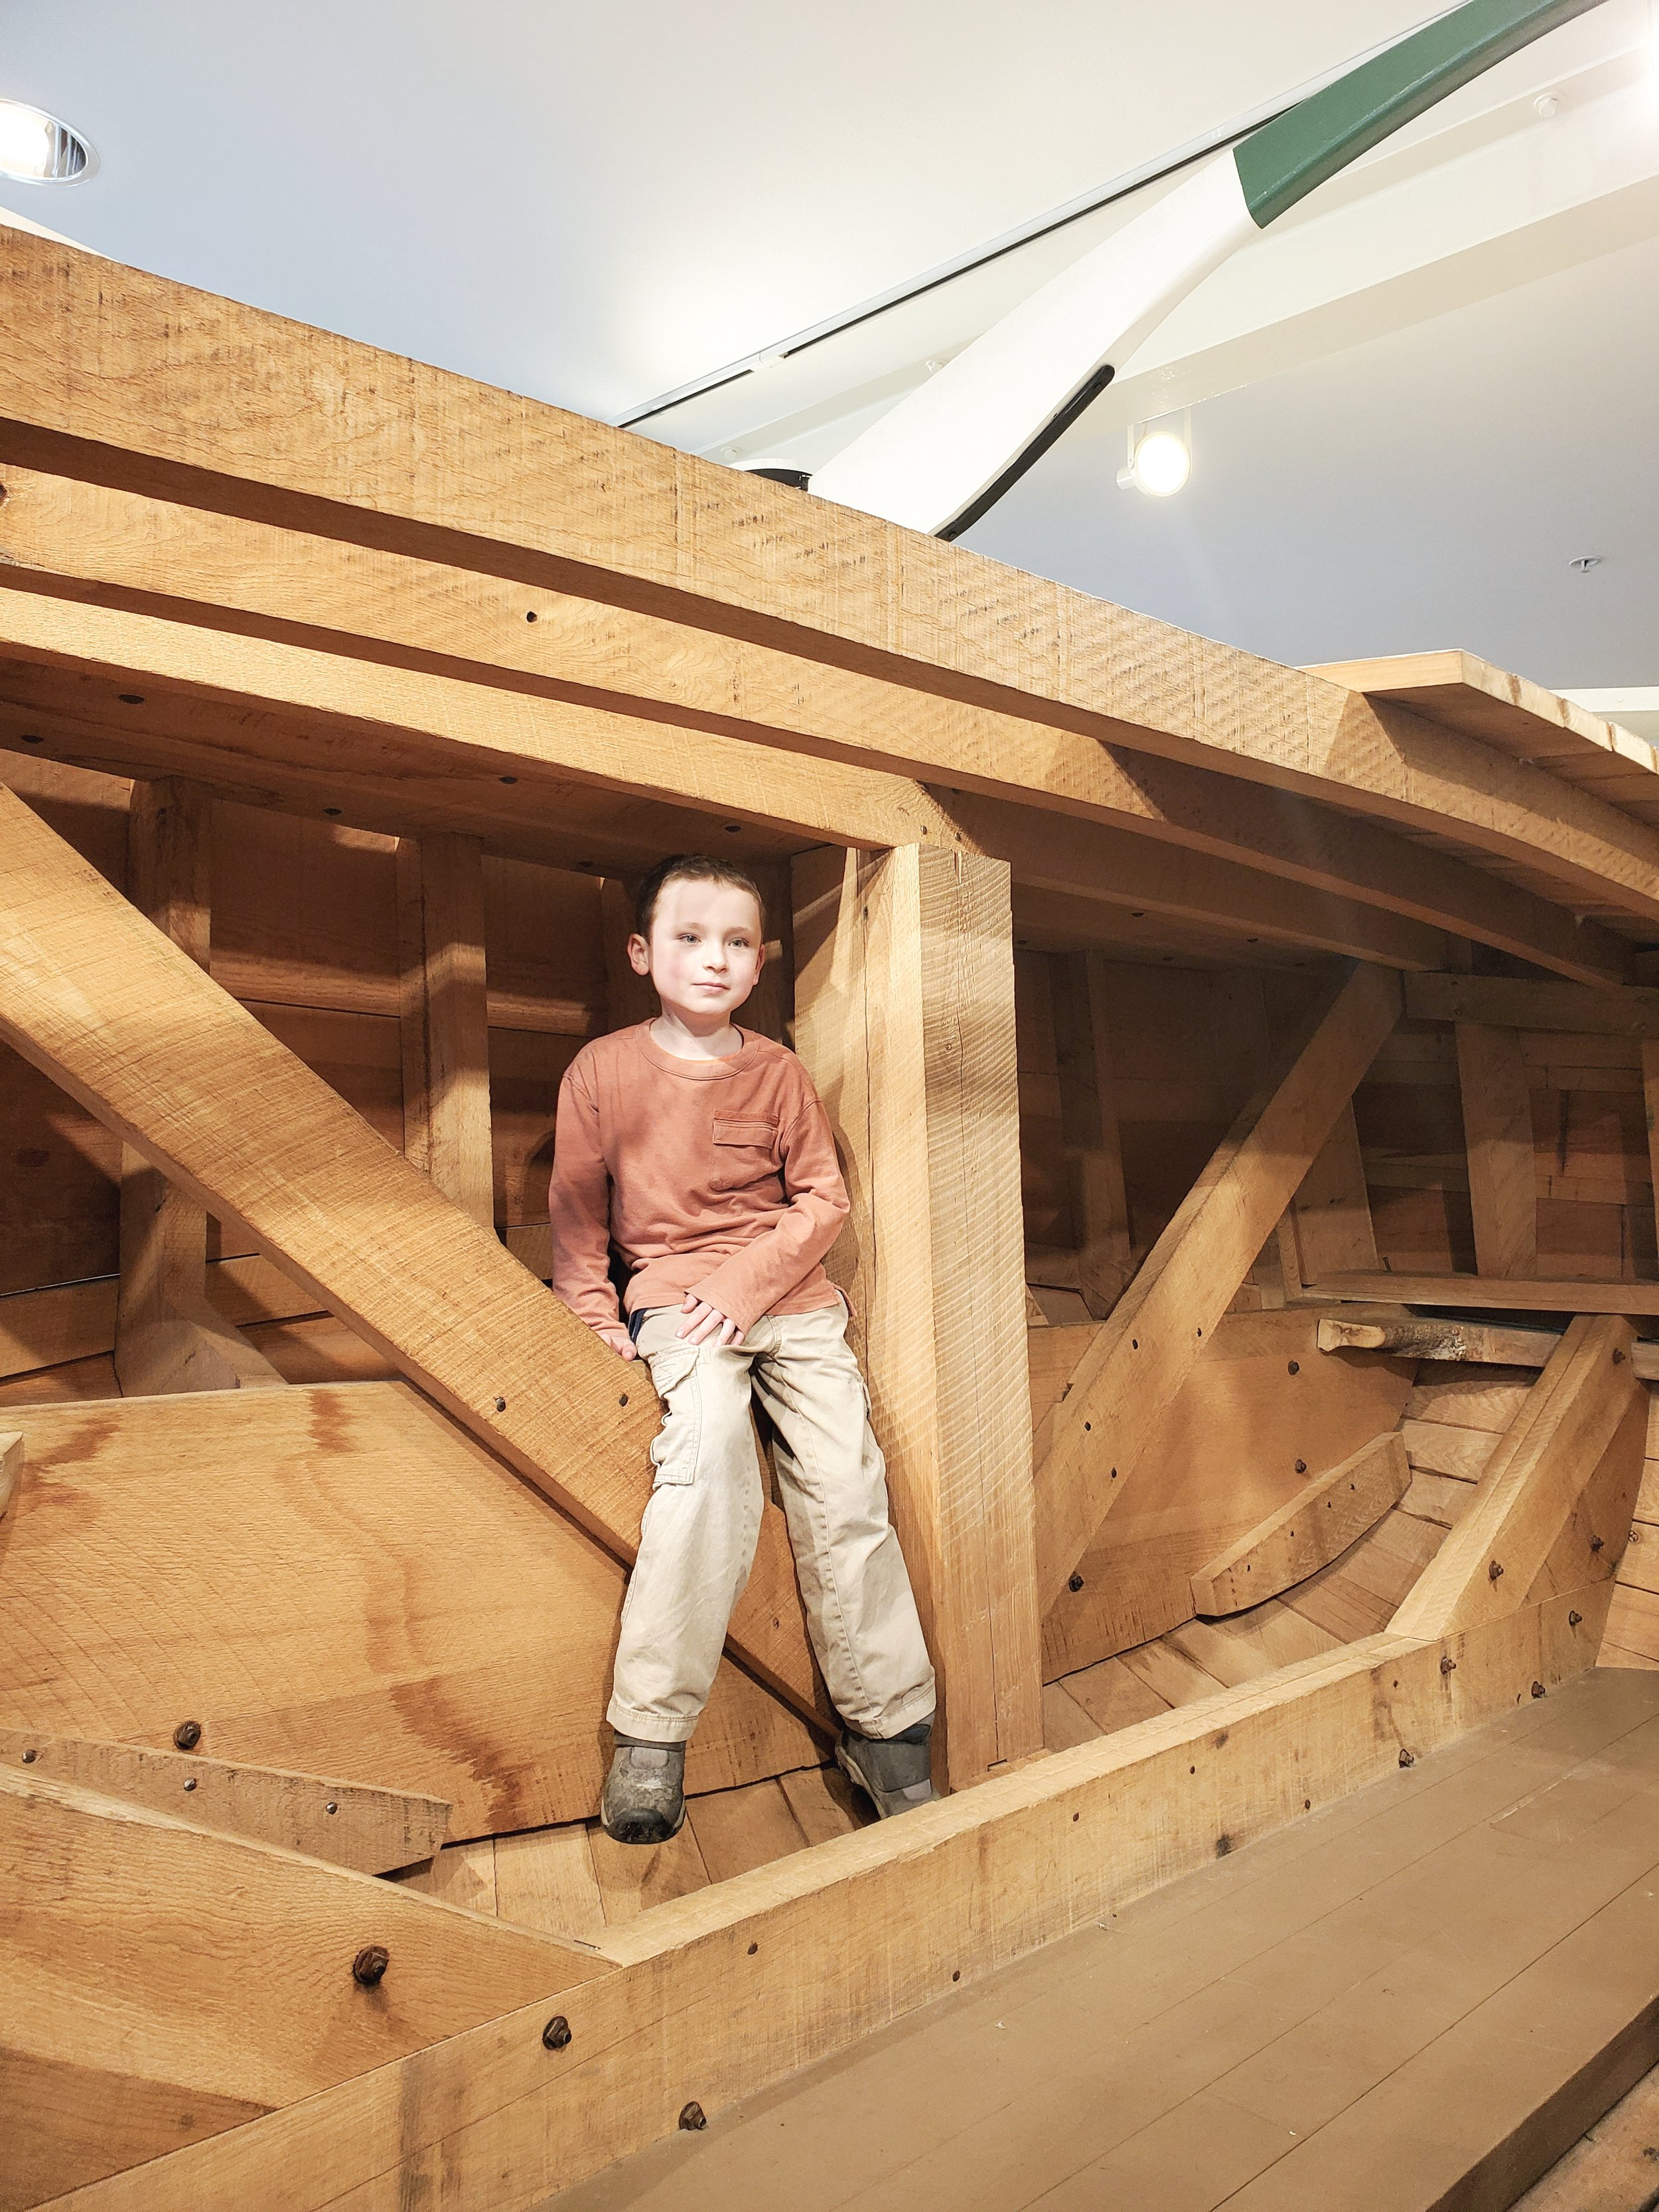 Replica of a timber framed canal boat at Cuyahoga Valley National Park's Boston Store Visitor Center.